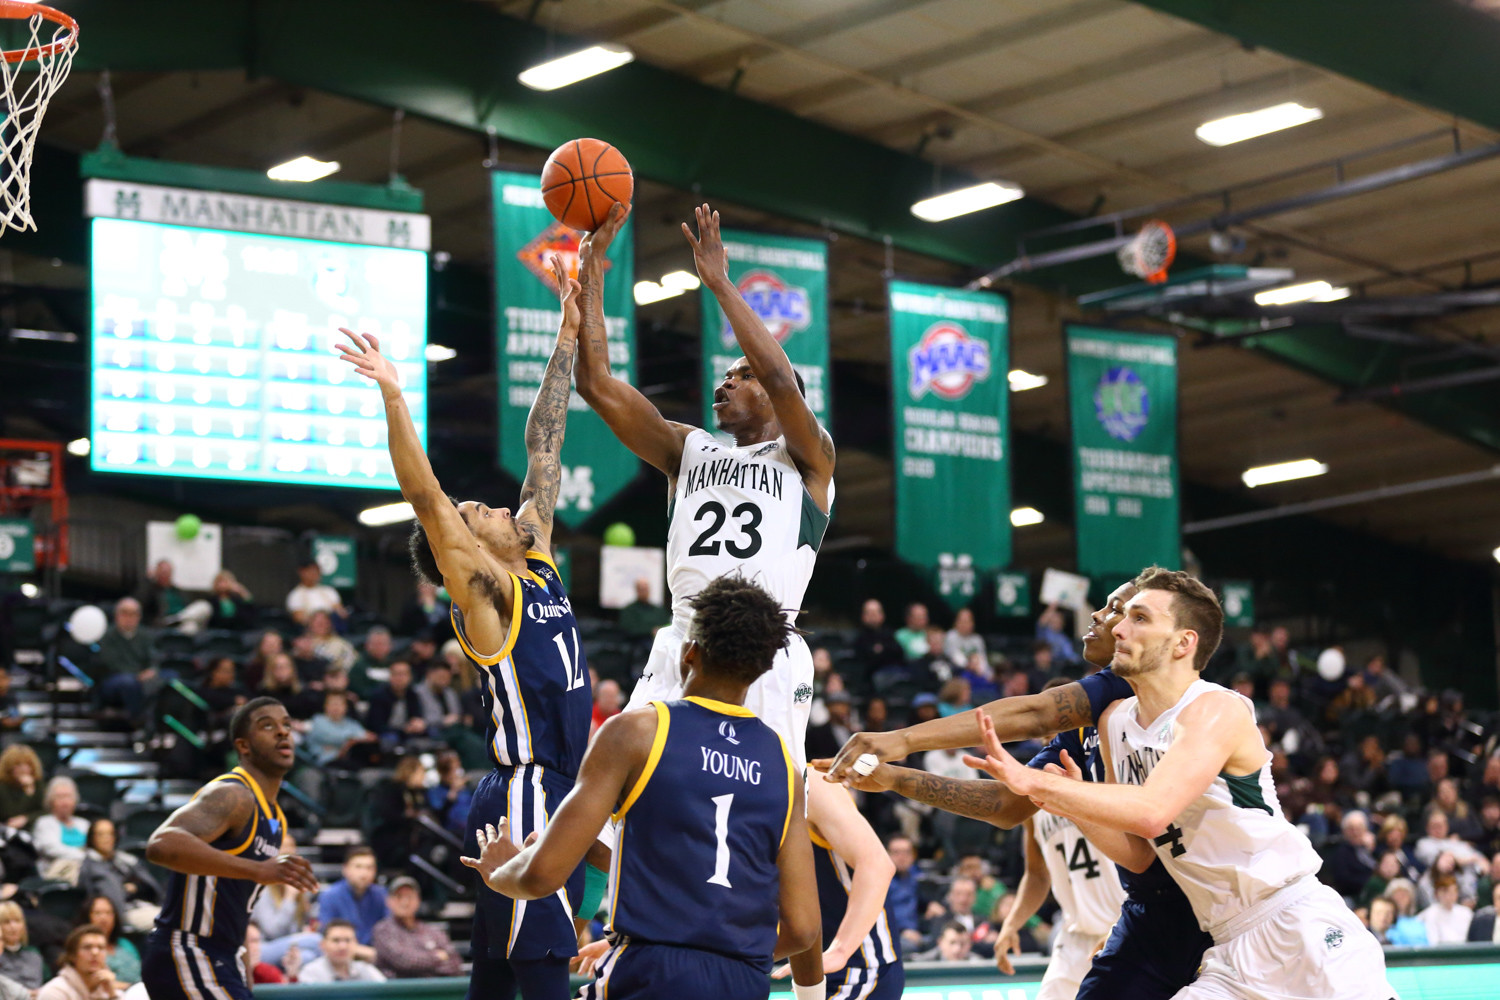 Manhattan senior Rich Williams scored 23 points on Senior Day as Manhattan downed Quinnipiac in double overtime.